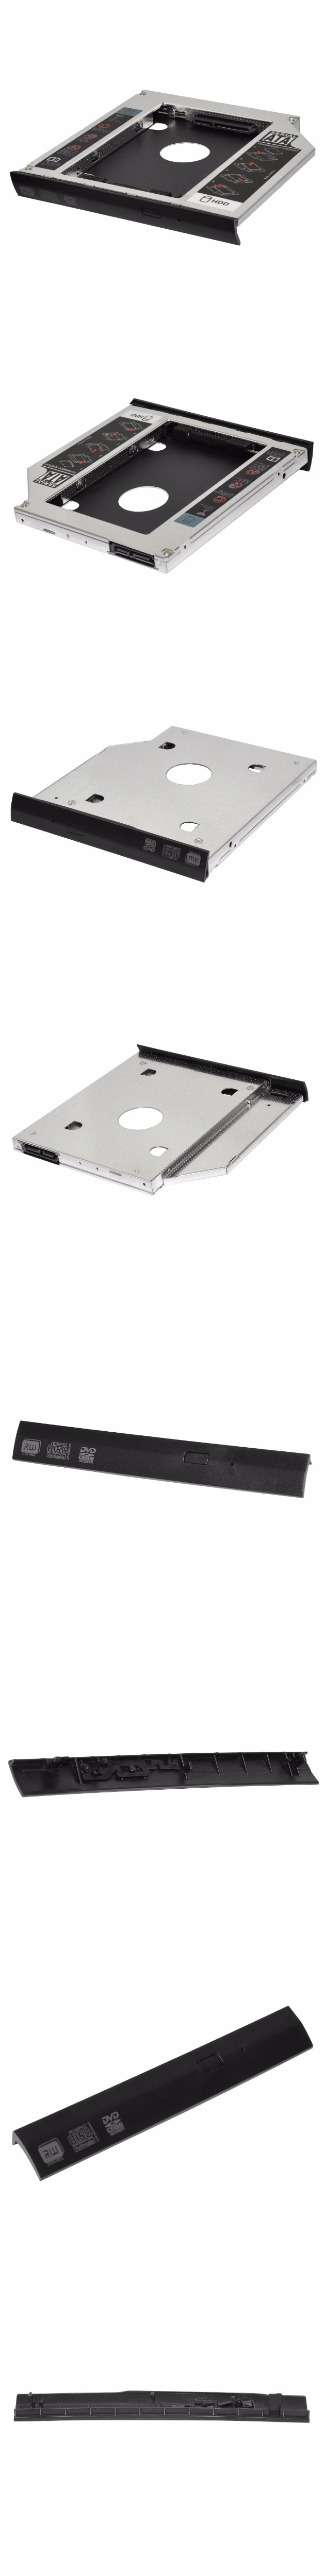 SATA 2ND HDD SSD HARD DRIVE caddy+bezel for HP ZBook 15 17 G2 G3 G4